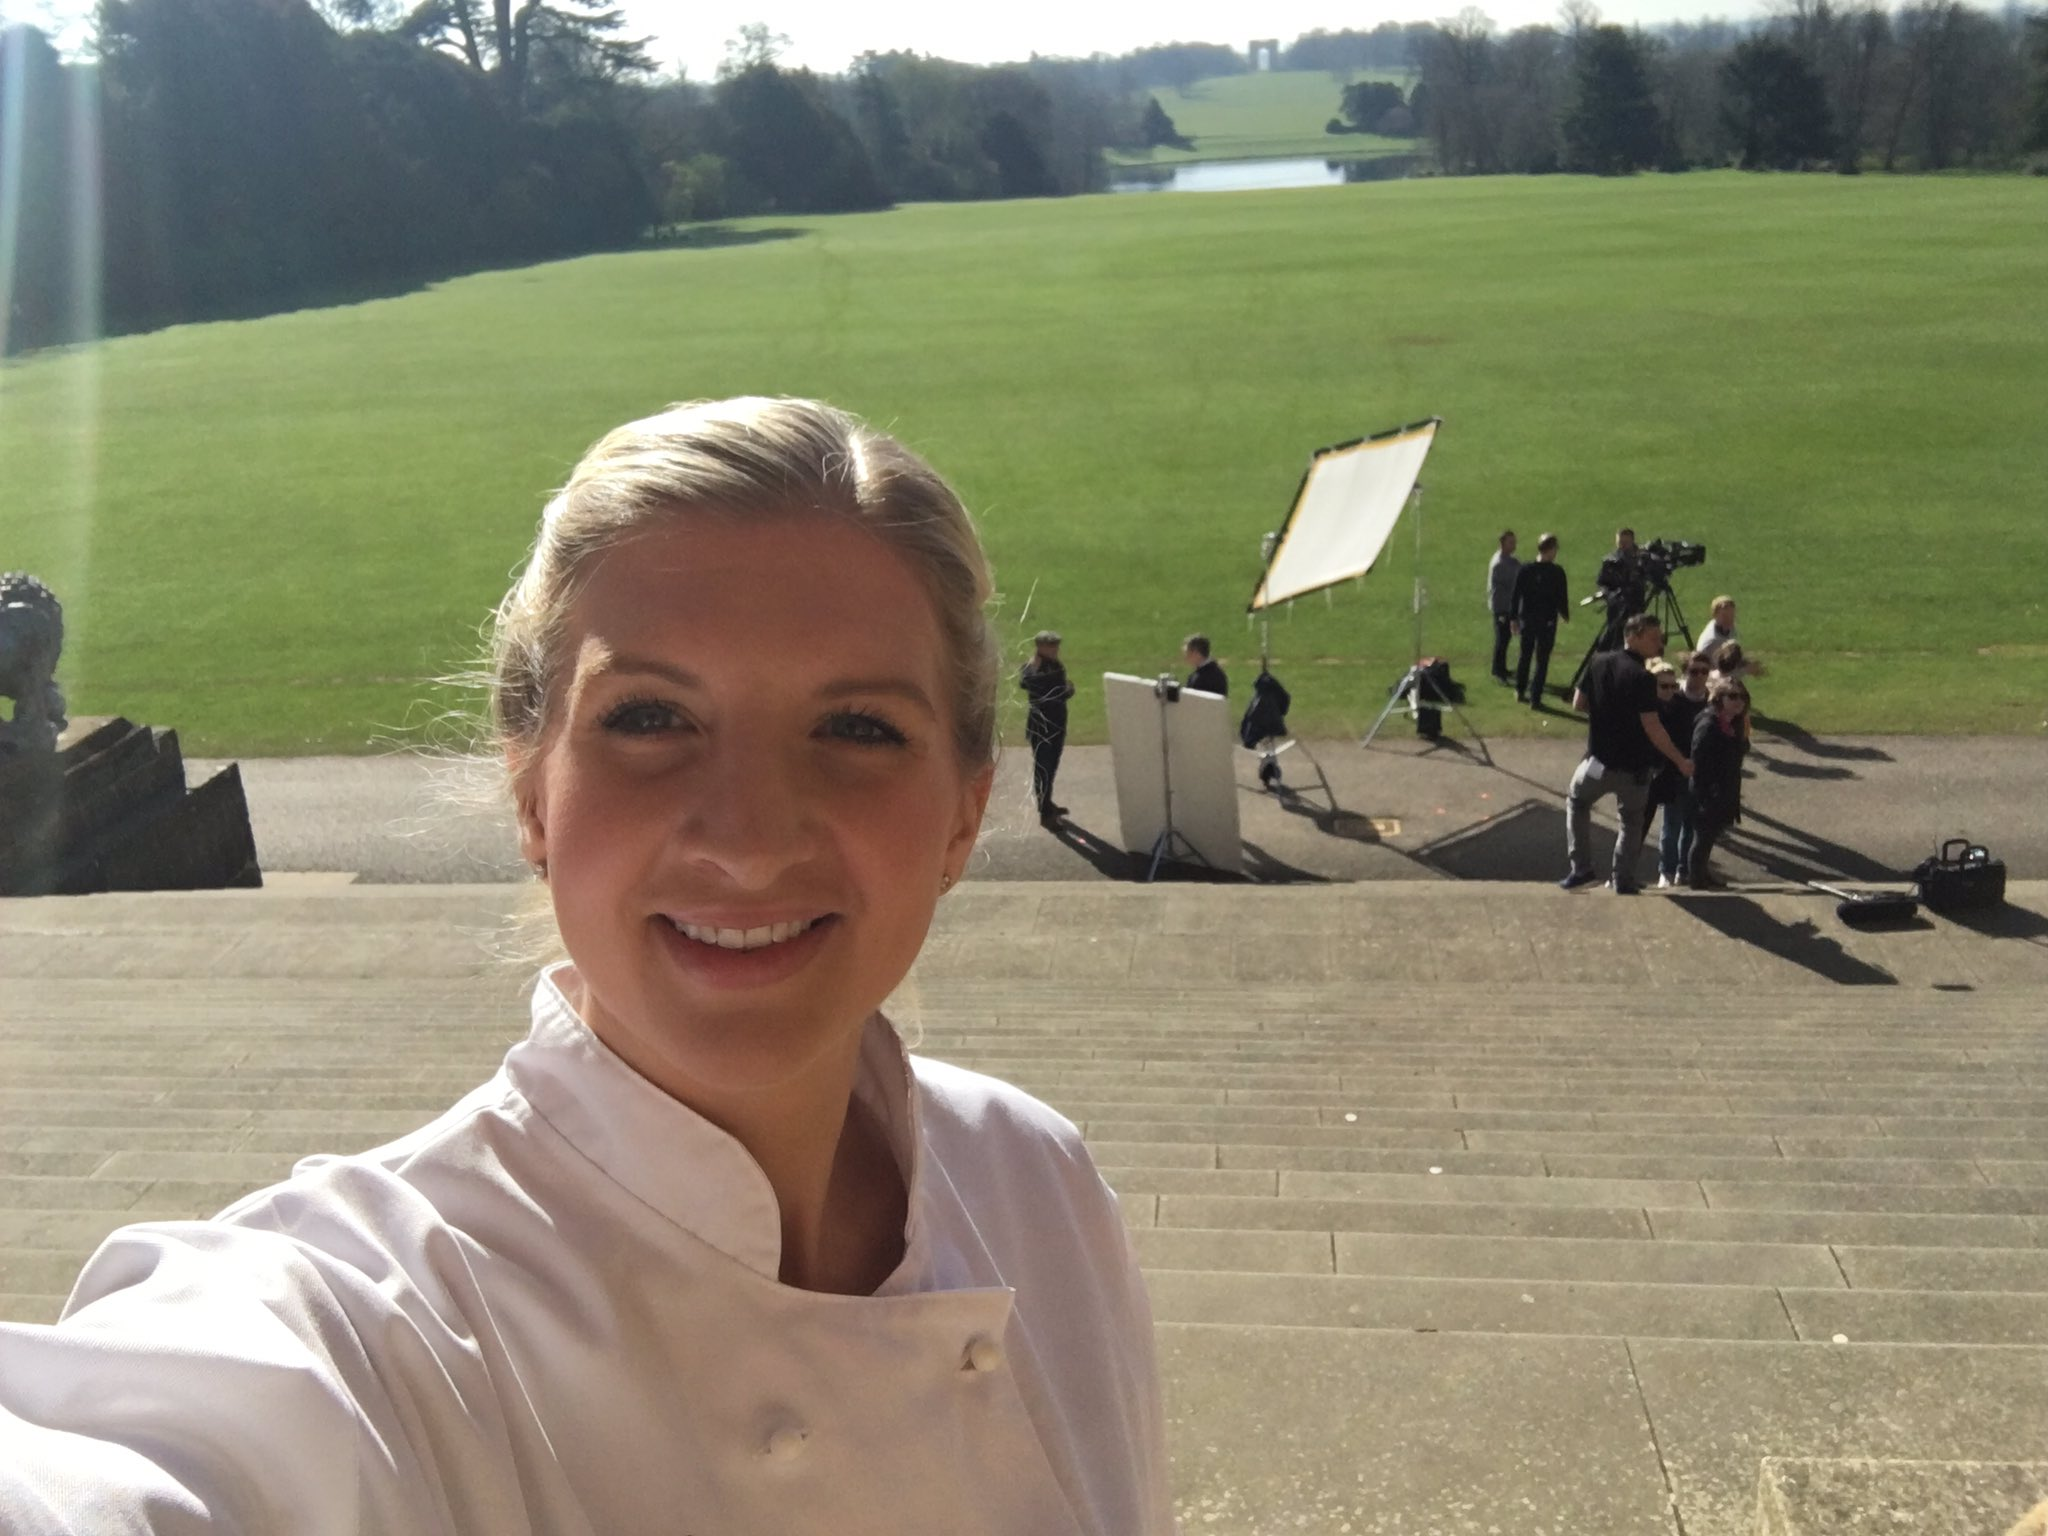 Absolutely loved Stowe House! Such a beautiful place @MasterChefUK https://t.co/fkSGeZSZFS